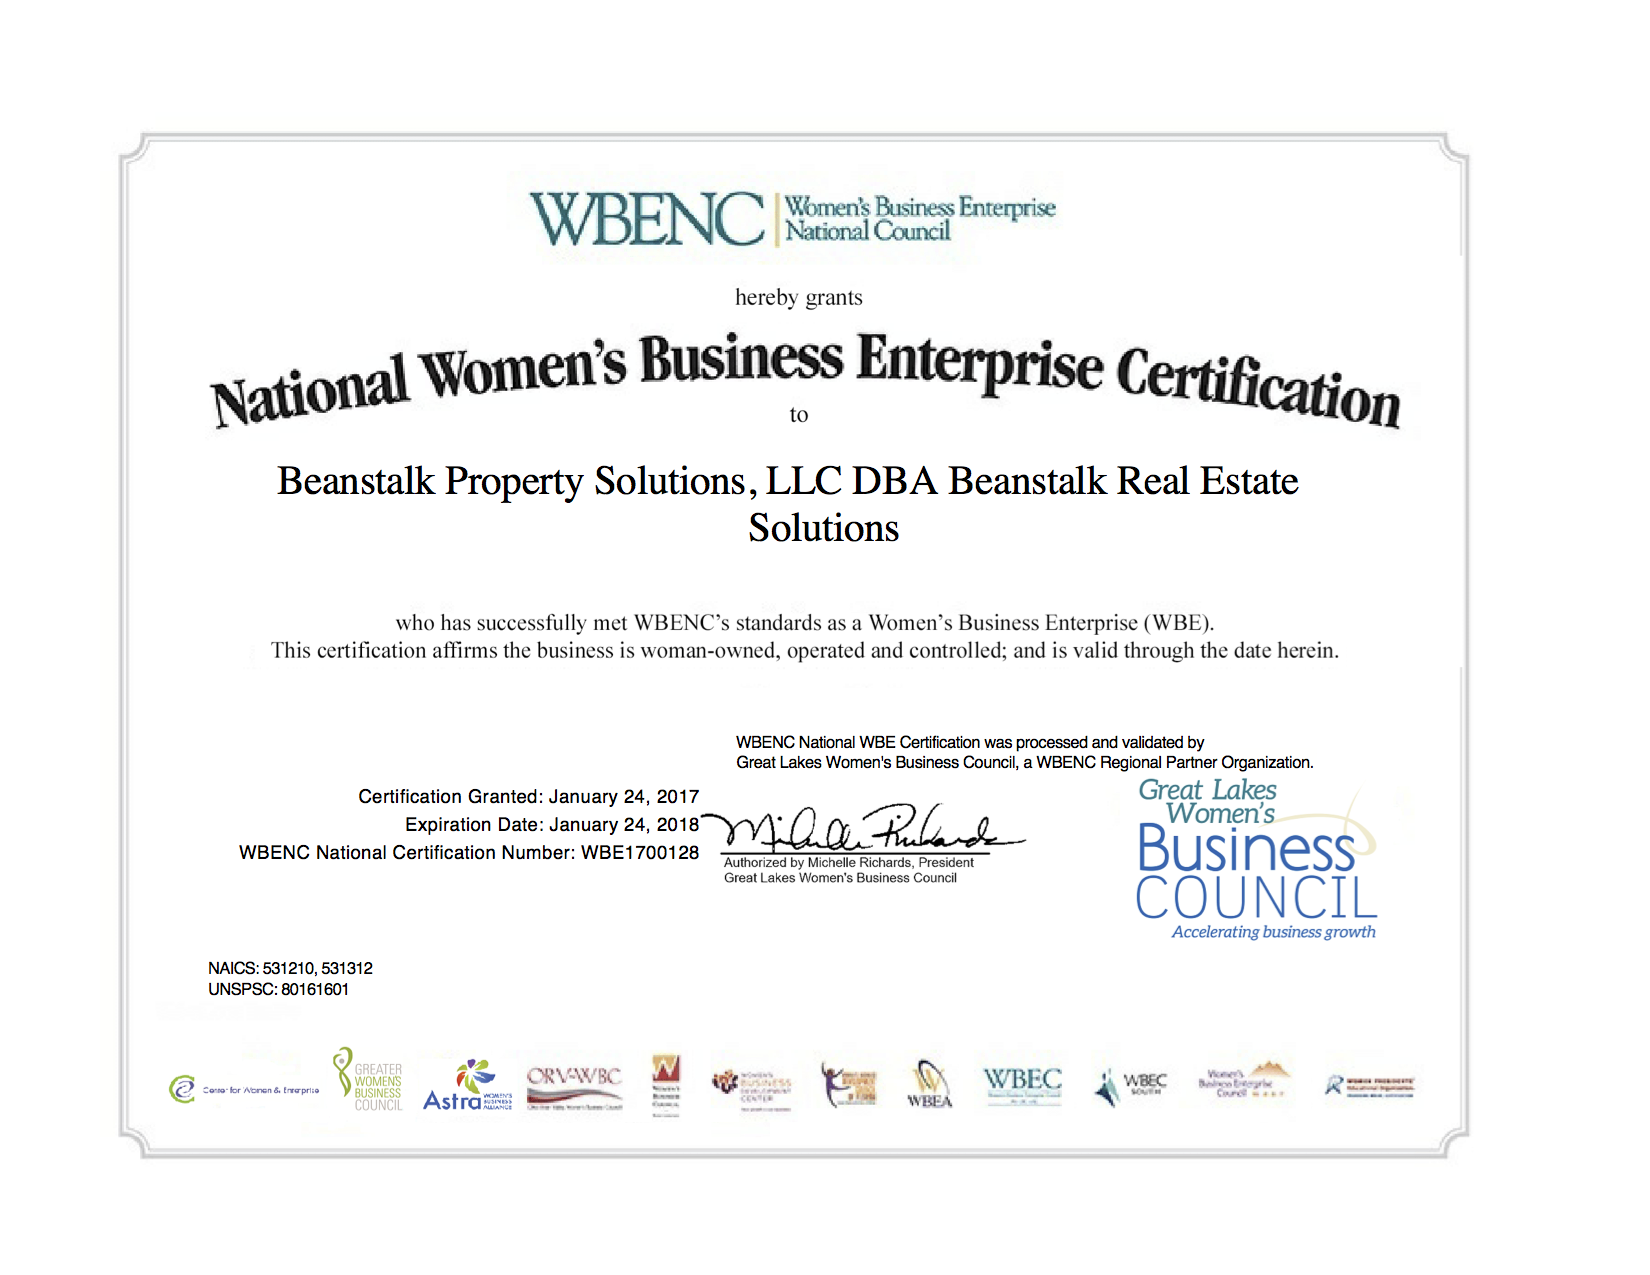 Wbenc Certified January 2017 Beanstalk Real Estate Solutions